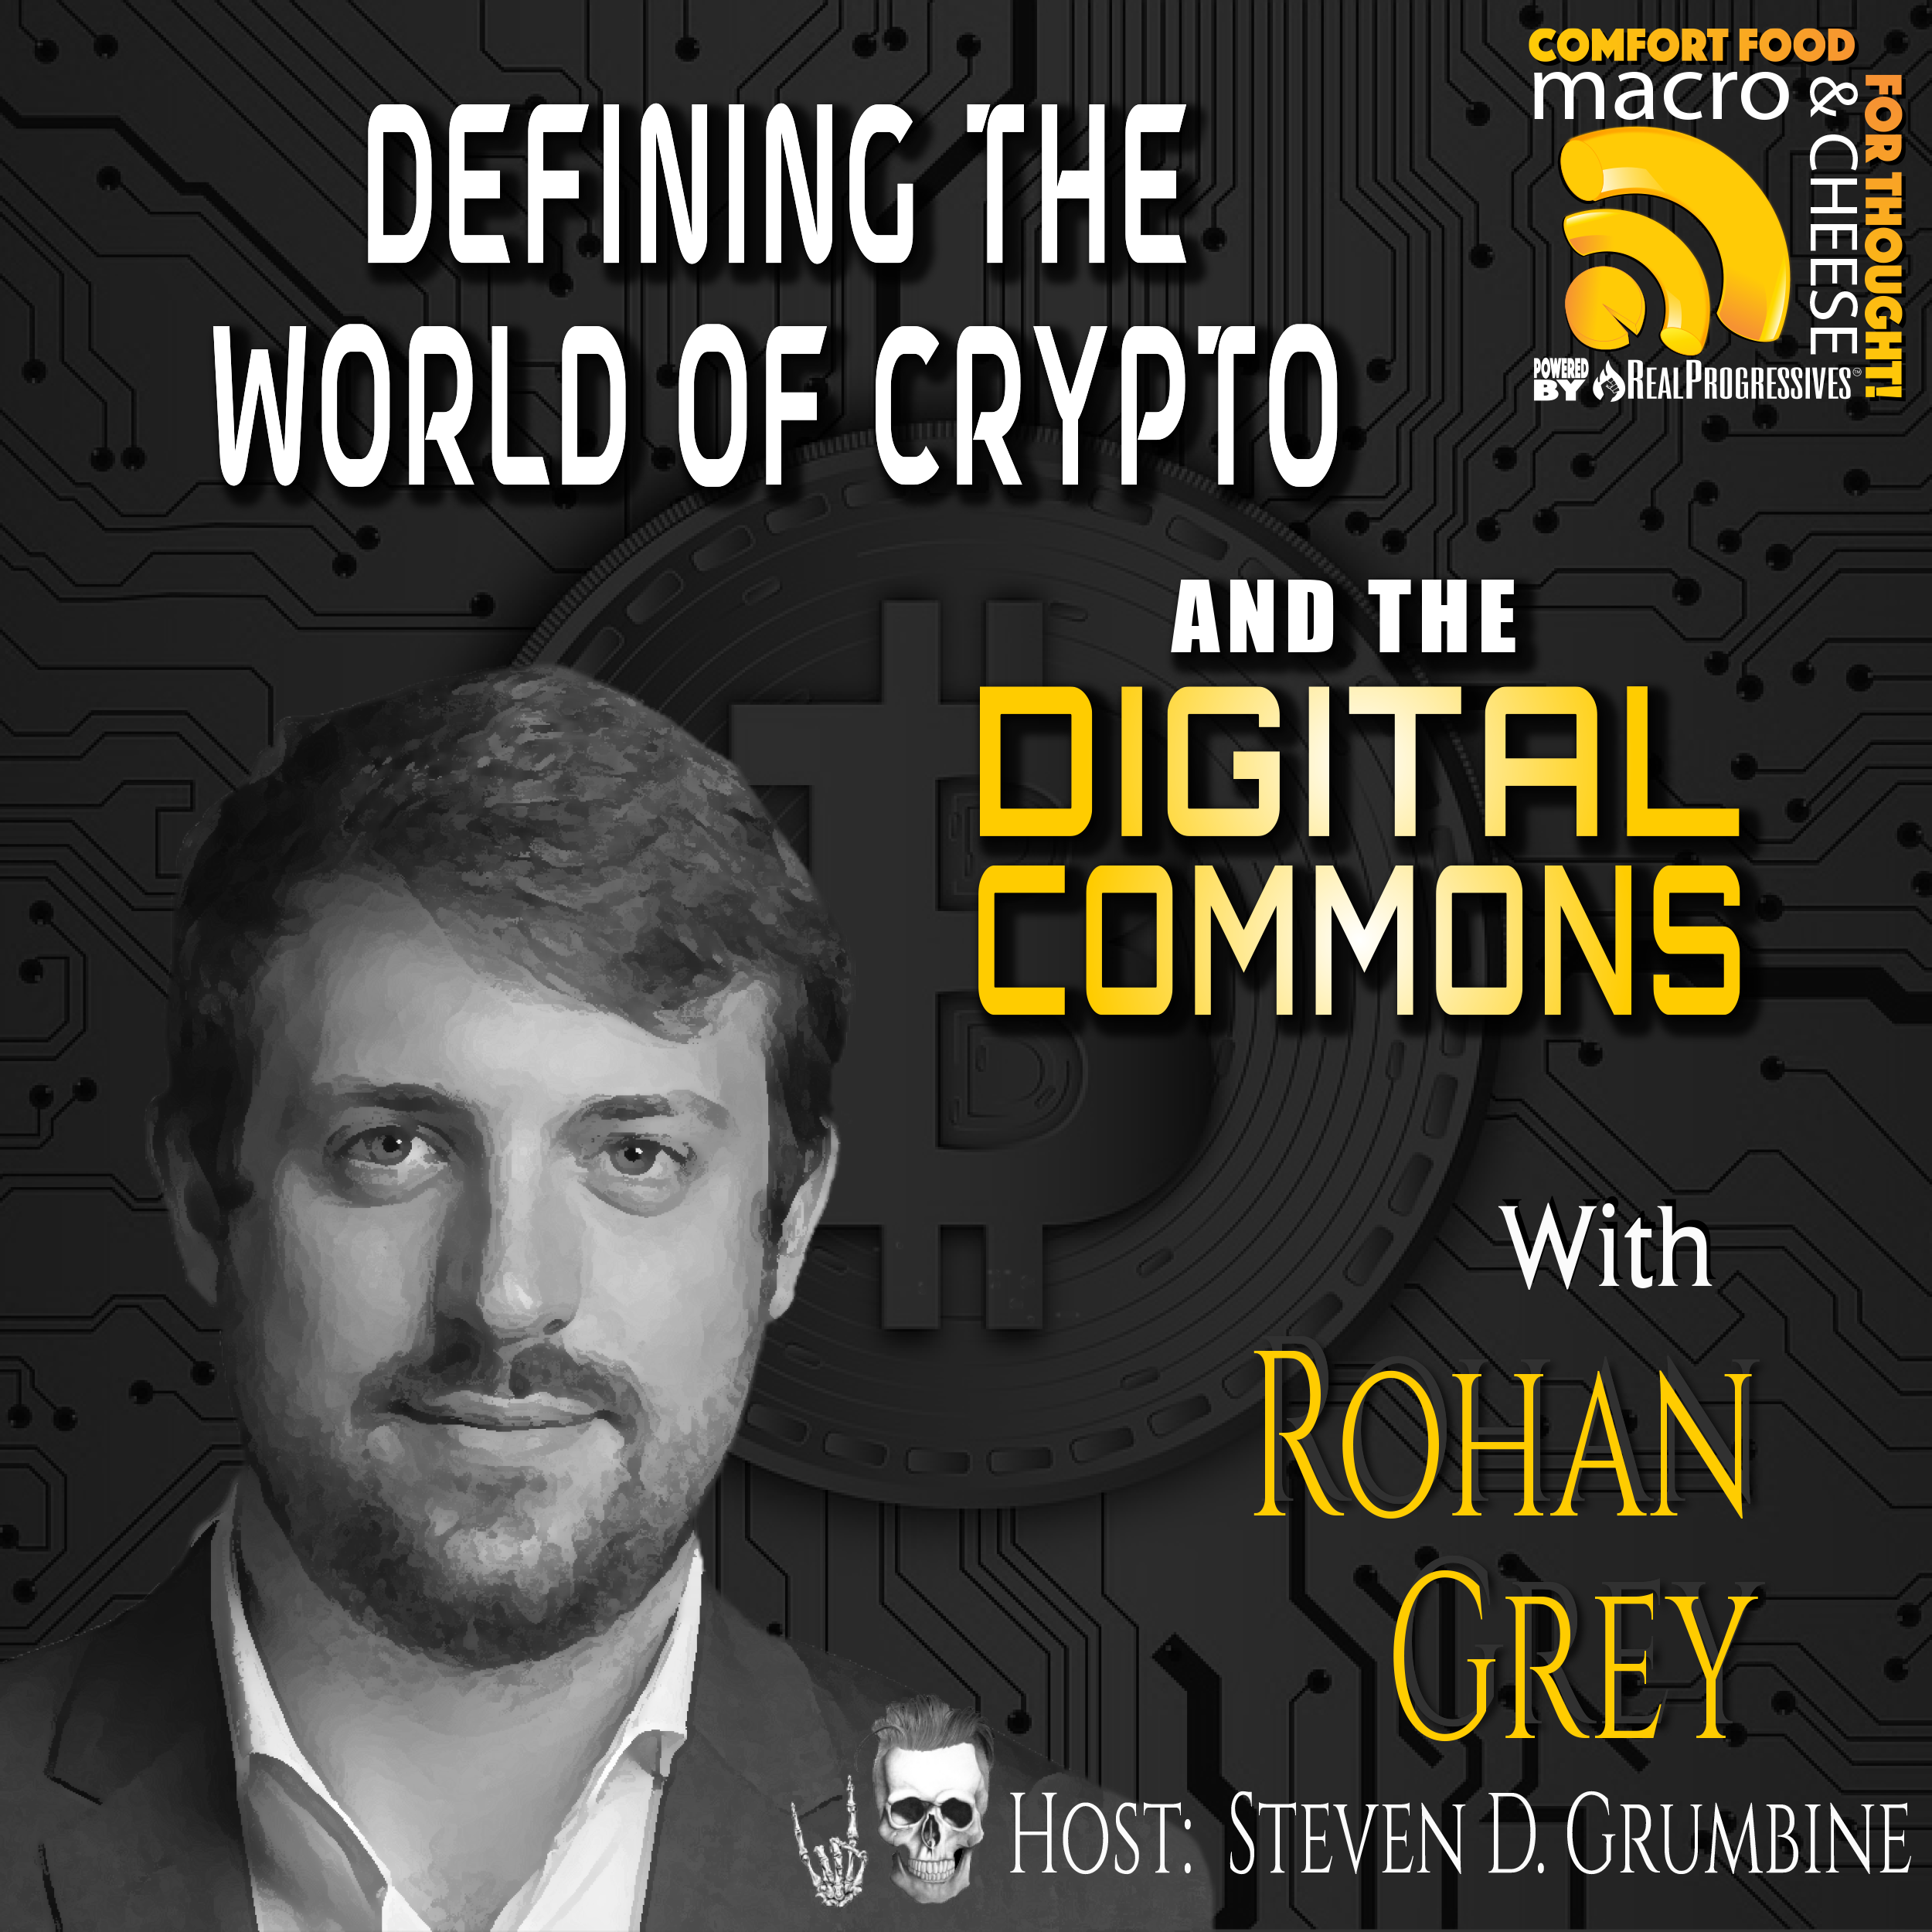 Defining the World of Crypto and the Digital Commons with Rohan Grey